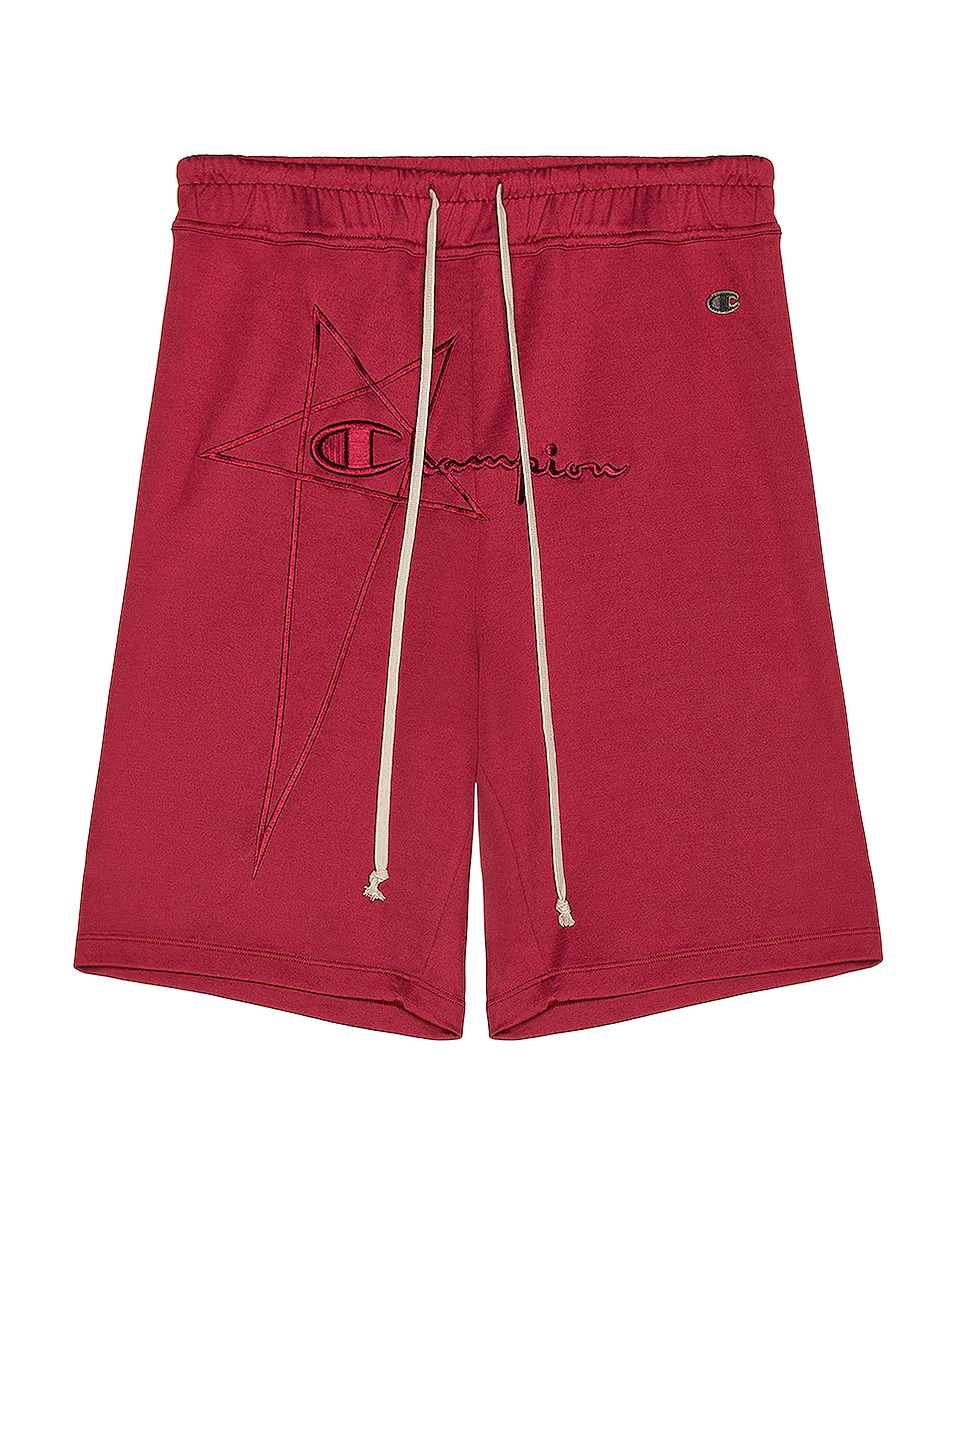 Image 1 of Rick Owens x Champion Classic Jersey Shorts in Cherry